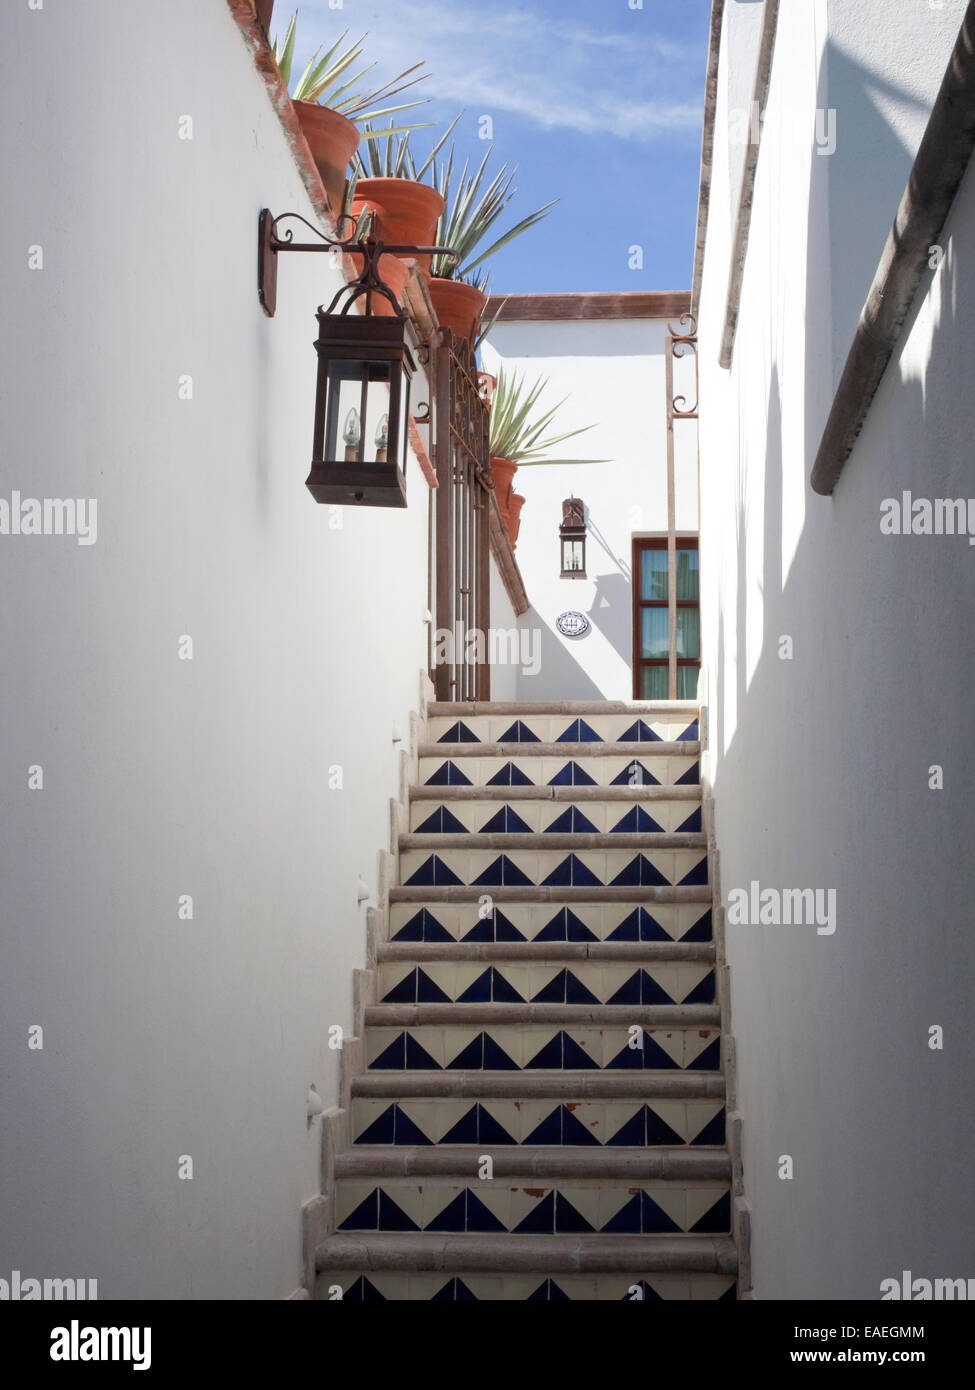 outdoor tile stair case of house in Mexico - Stock Image